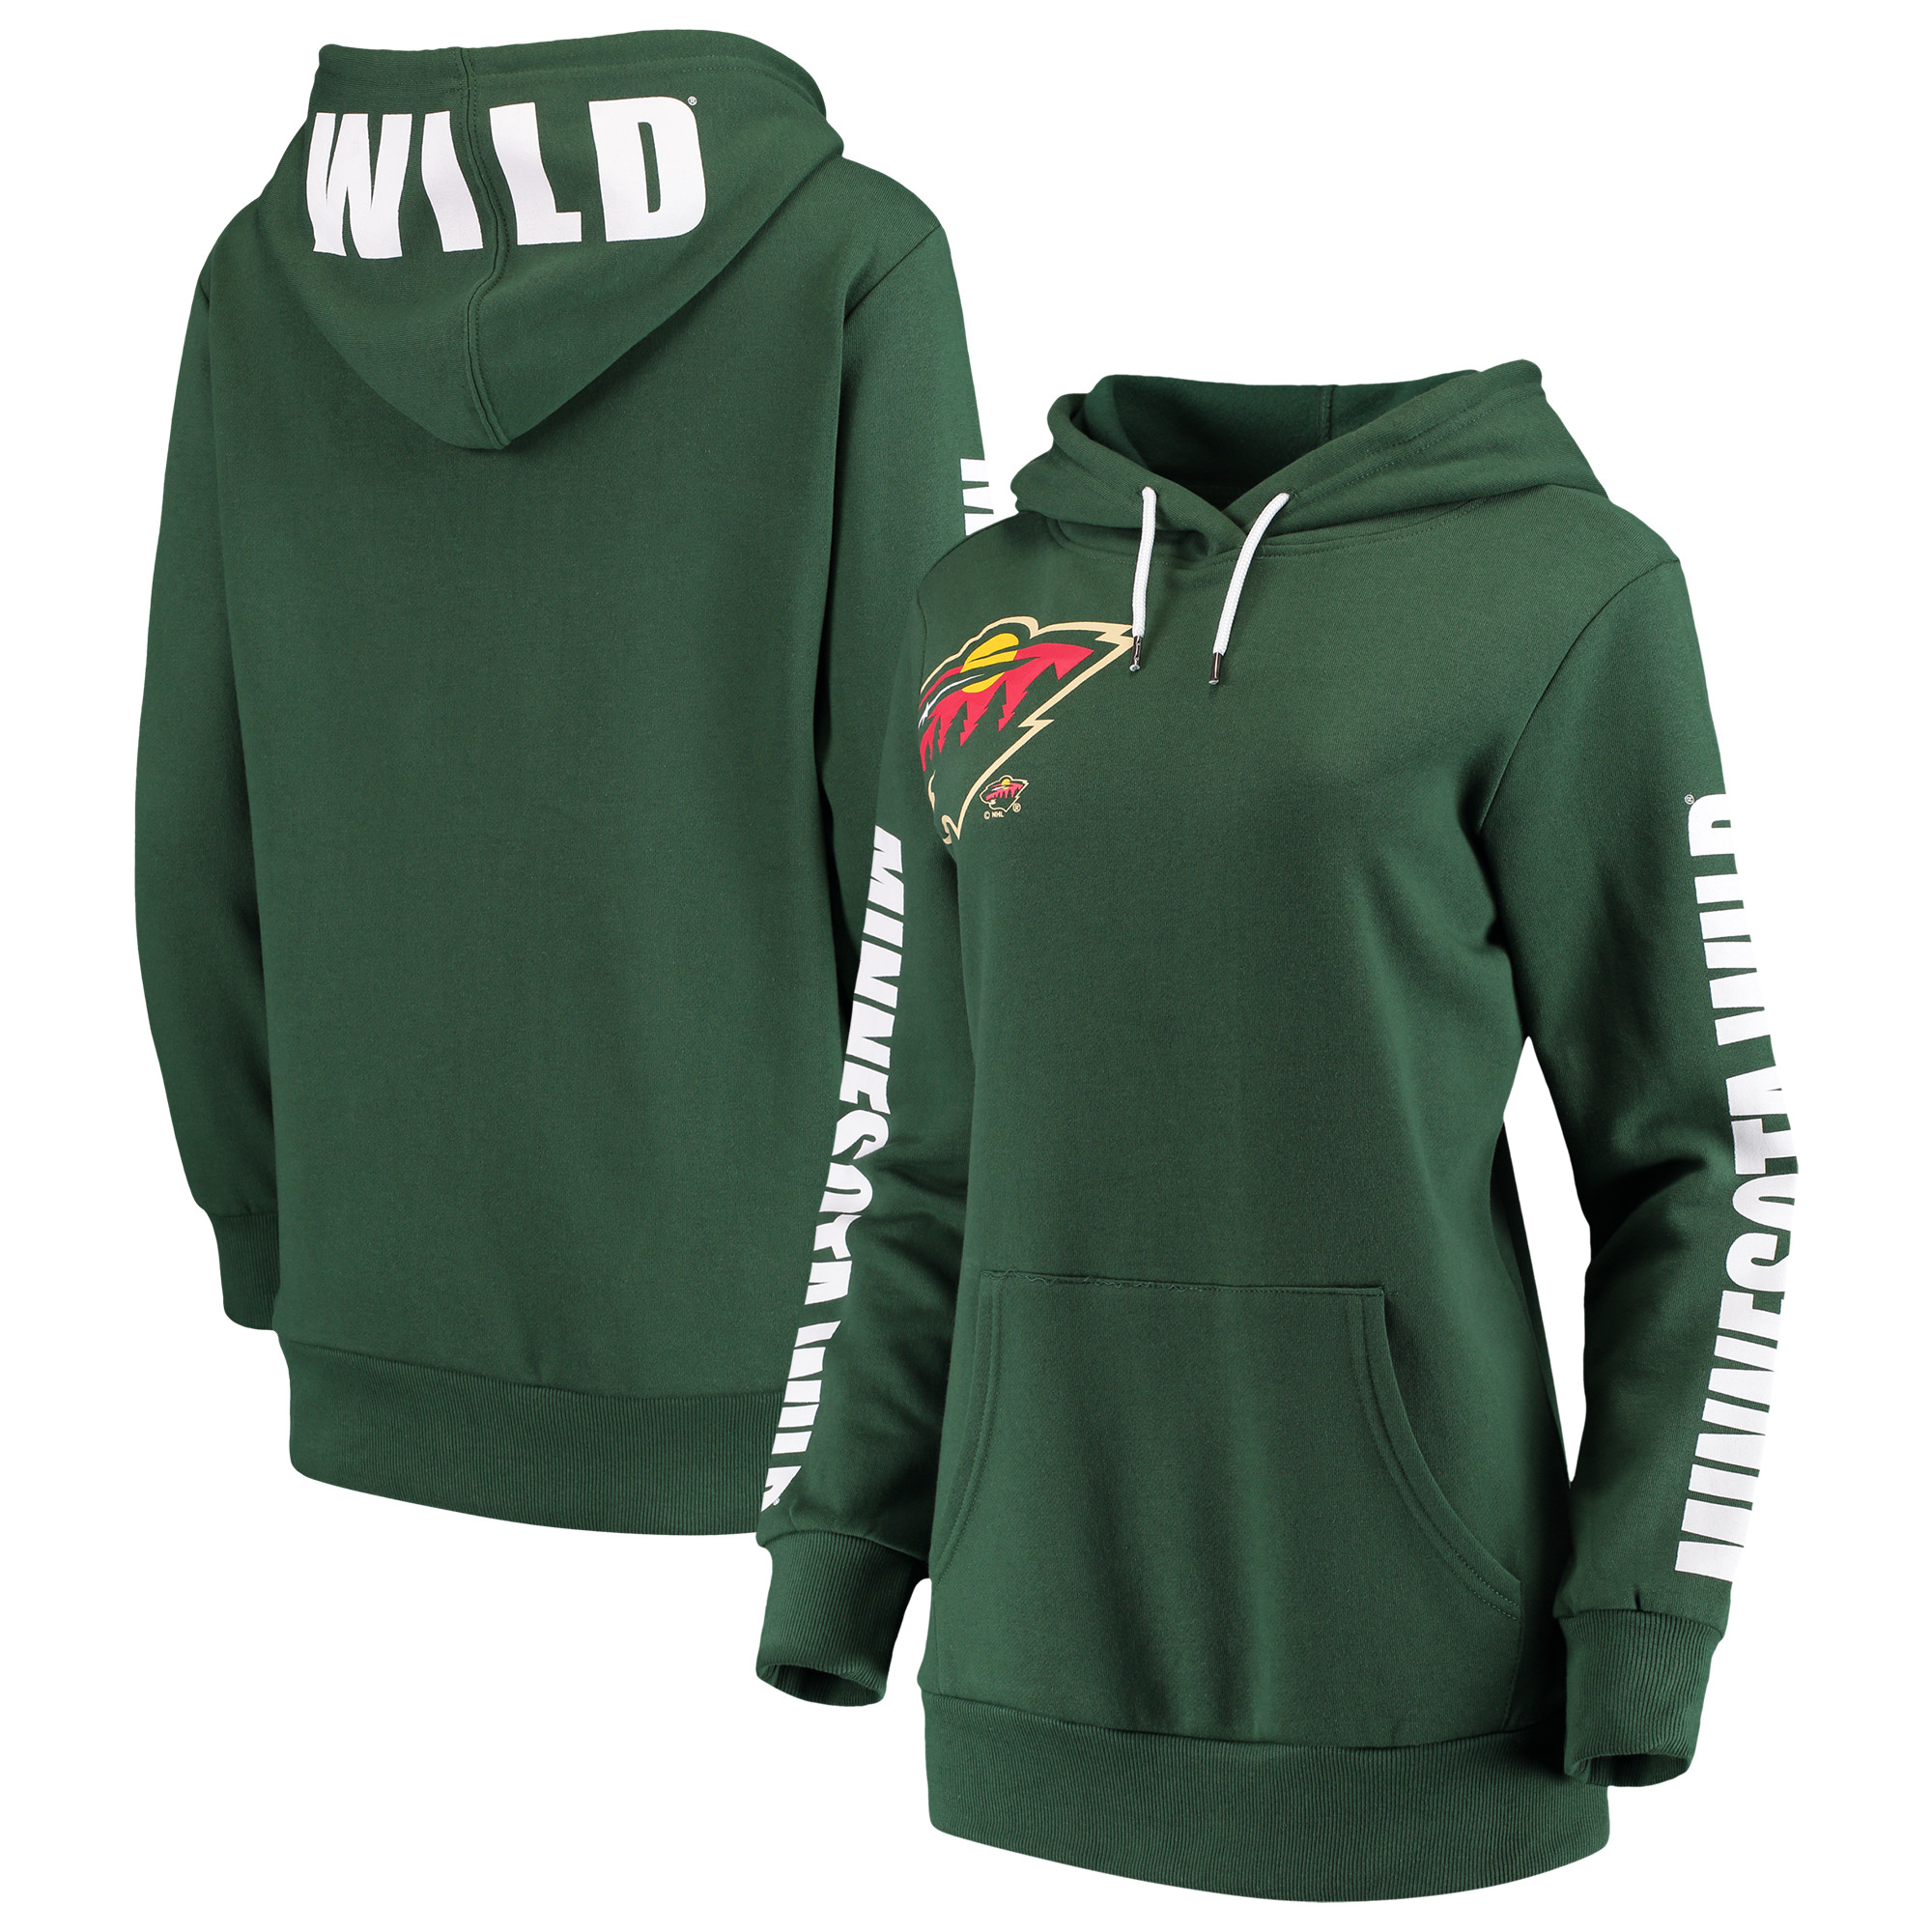 Minnesota Wild G-III 4Her by Carl Banks Women's 12th Inning Pullover Hoodie - Green